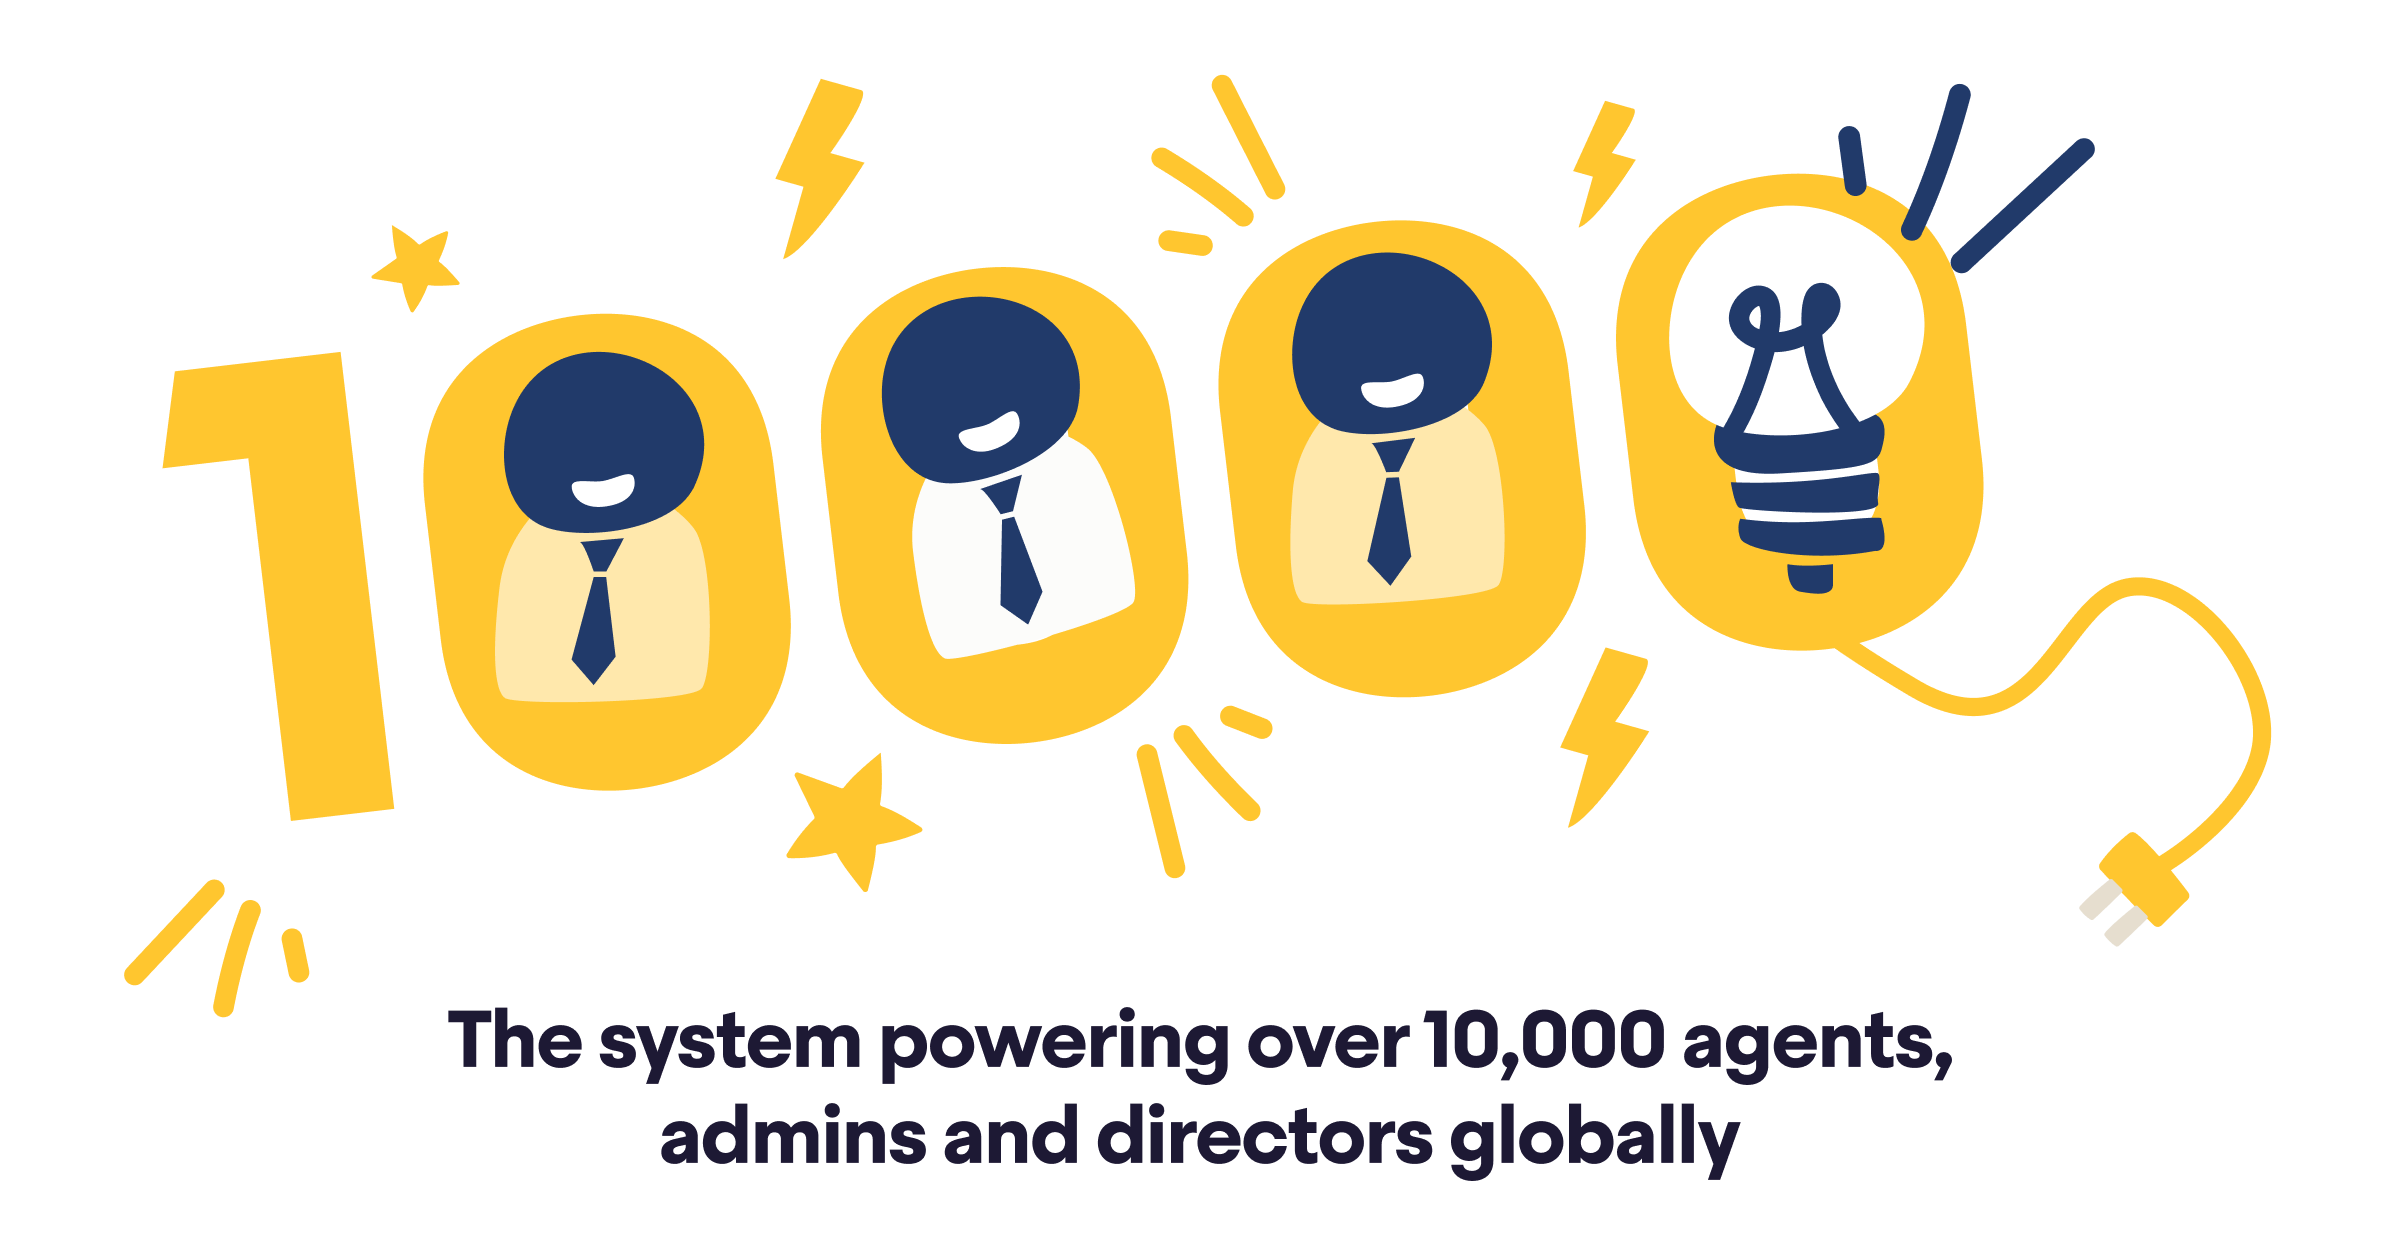 10,000 agents, admins and directors globally